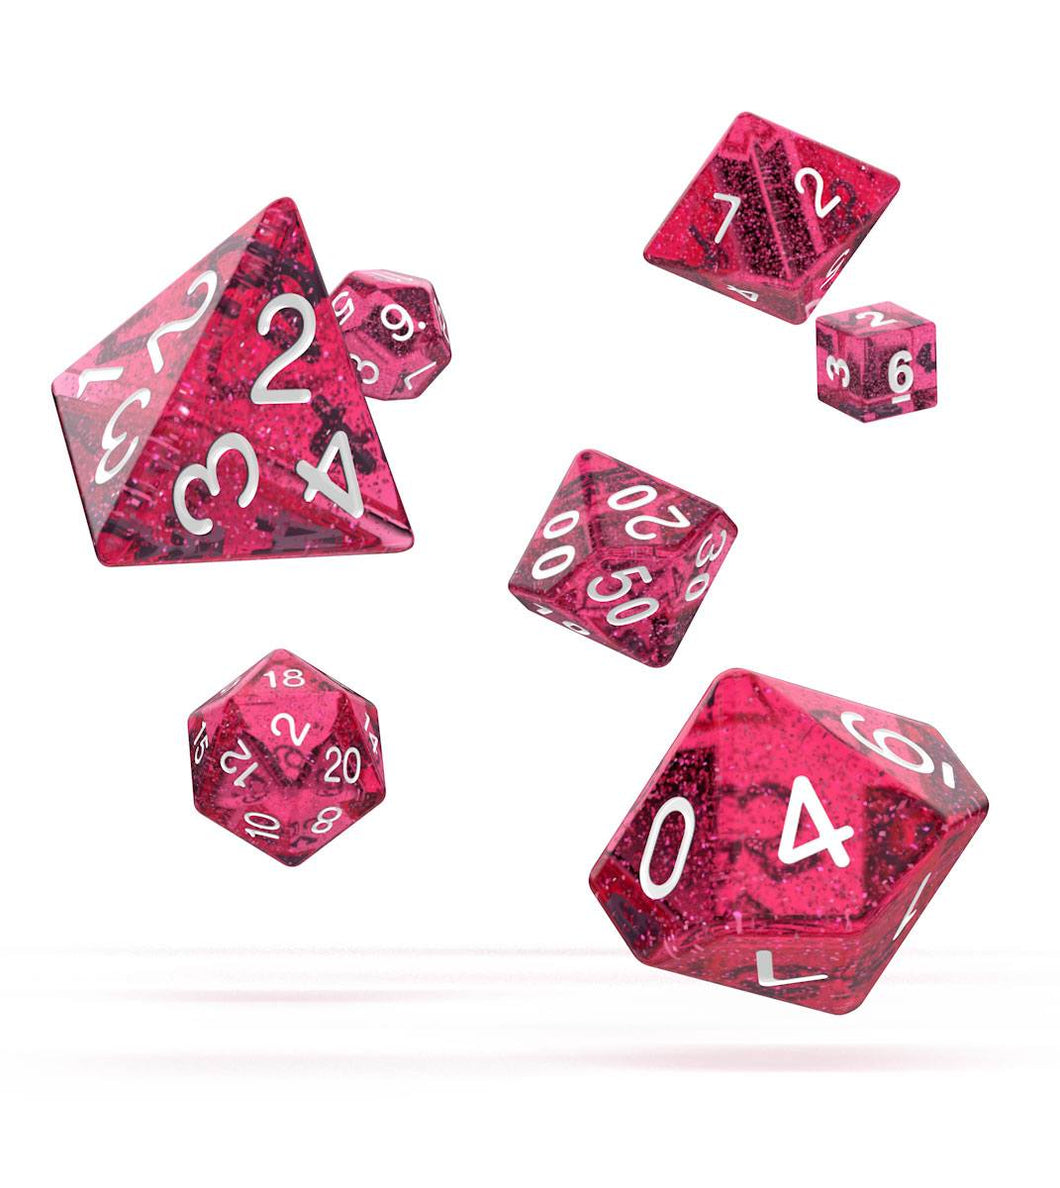 Oakie Doakie Dice RPG Set Speckled - Pink 7 stk